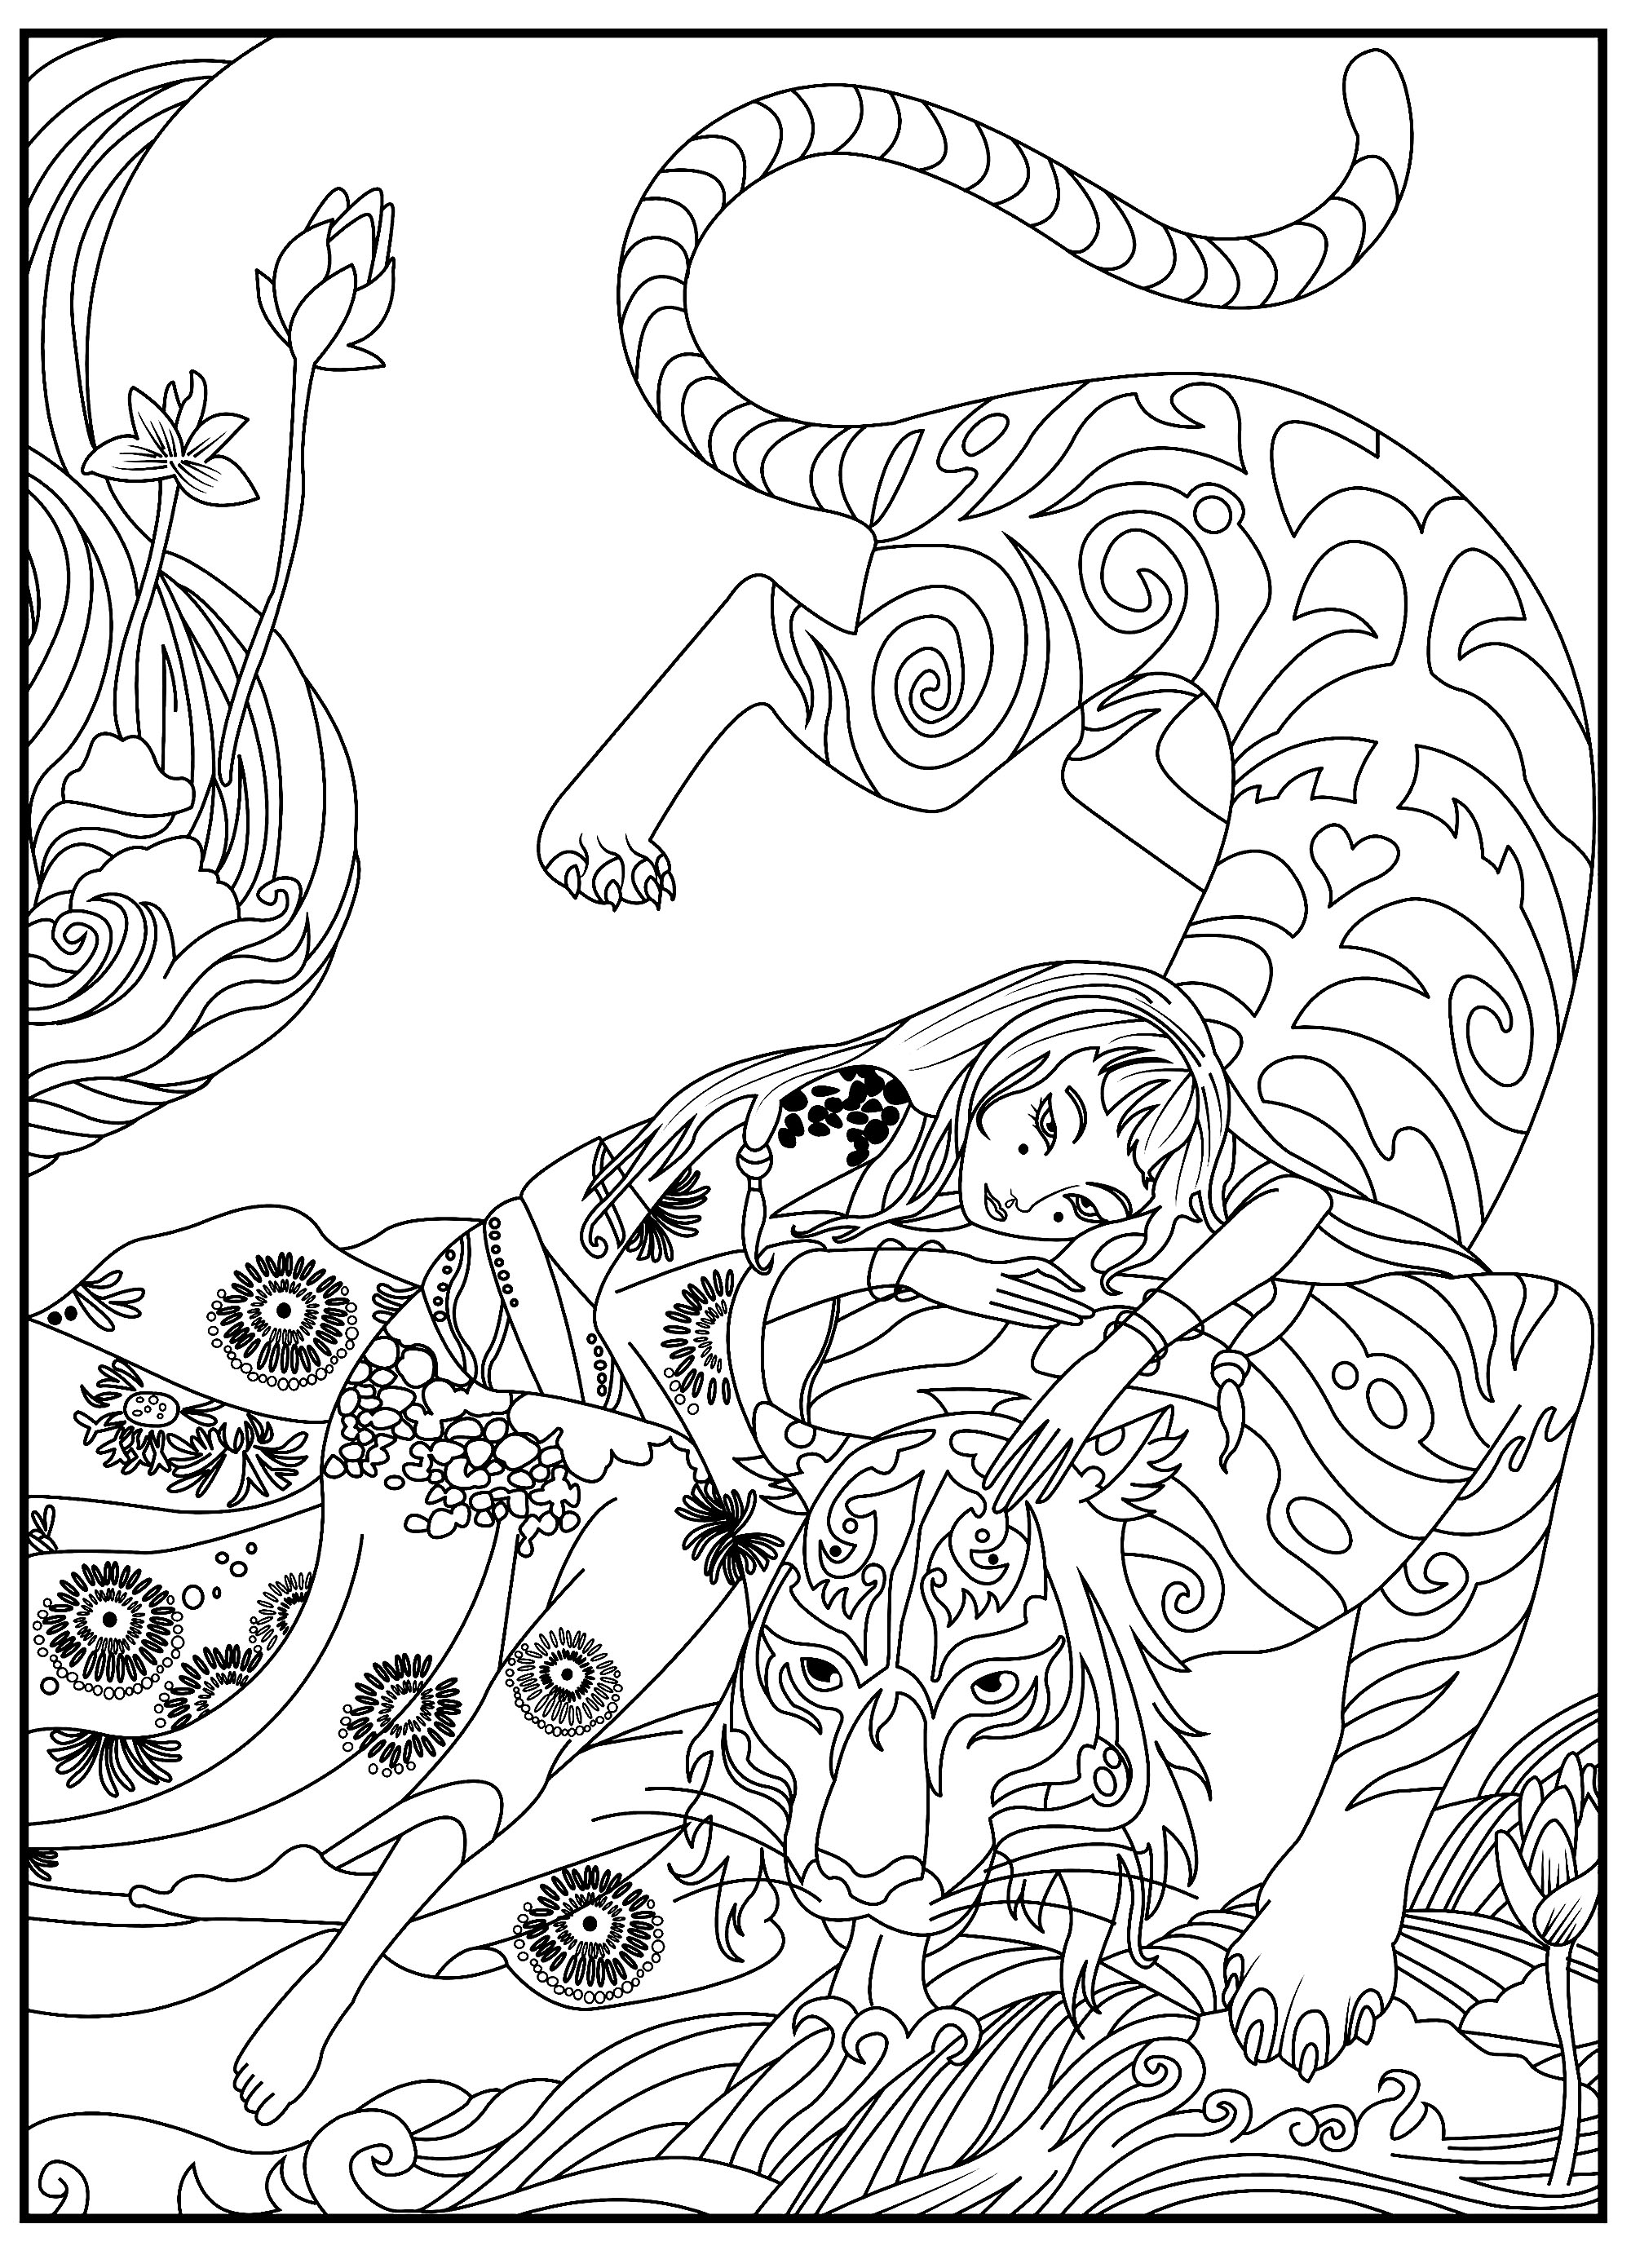 Tigers Free To Color For Kids